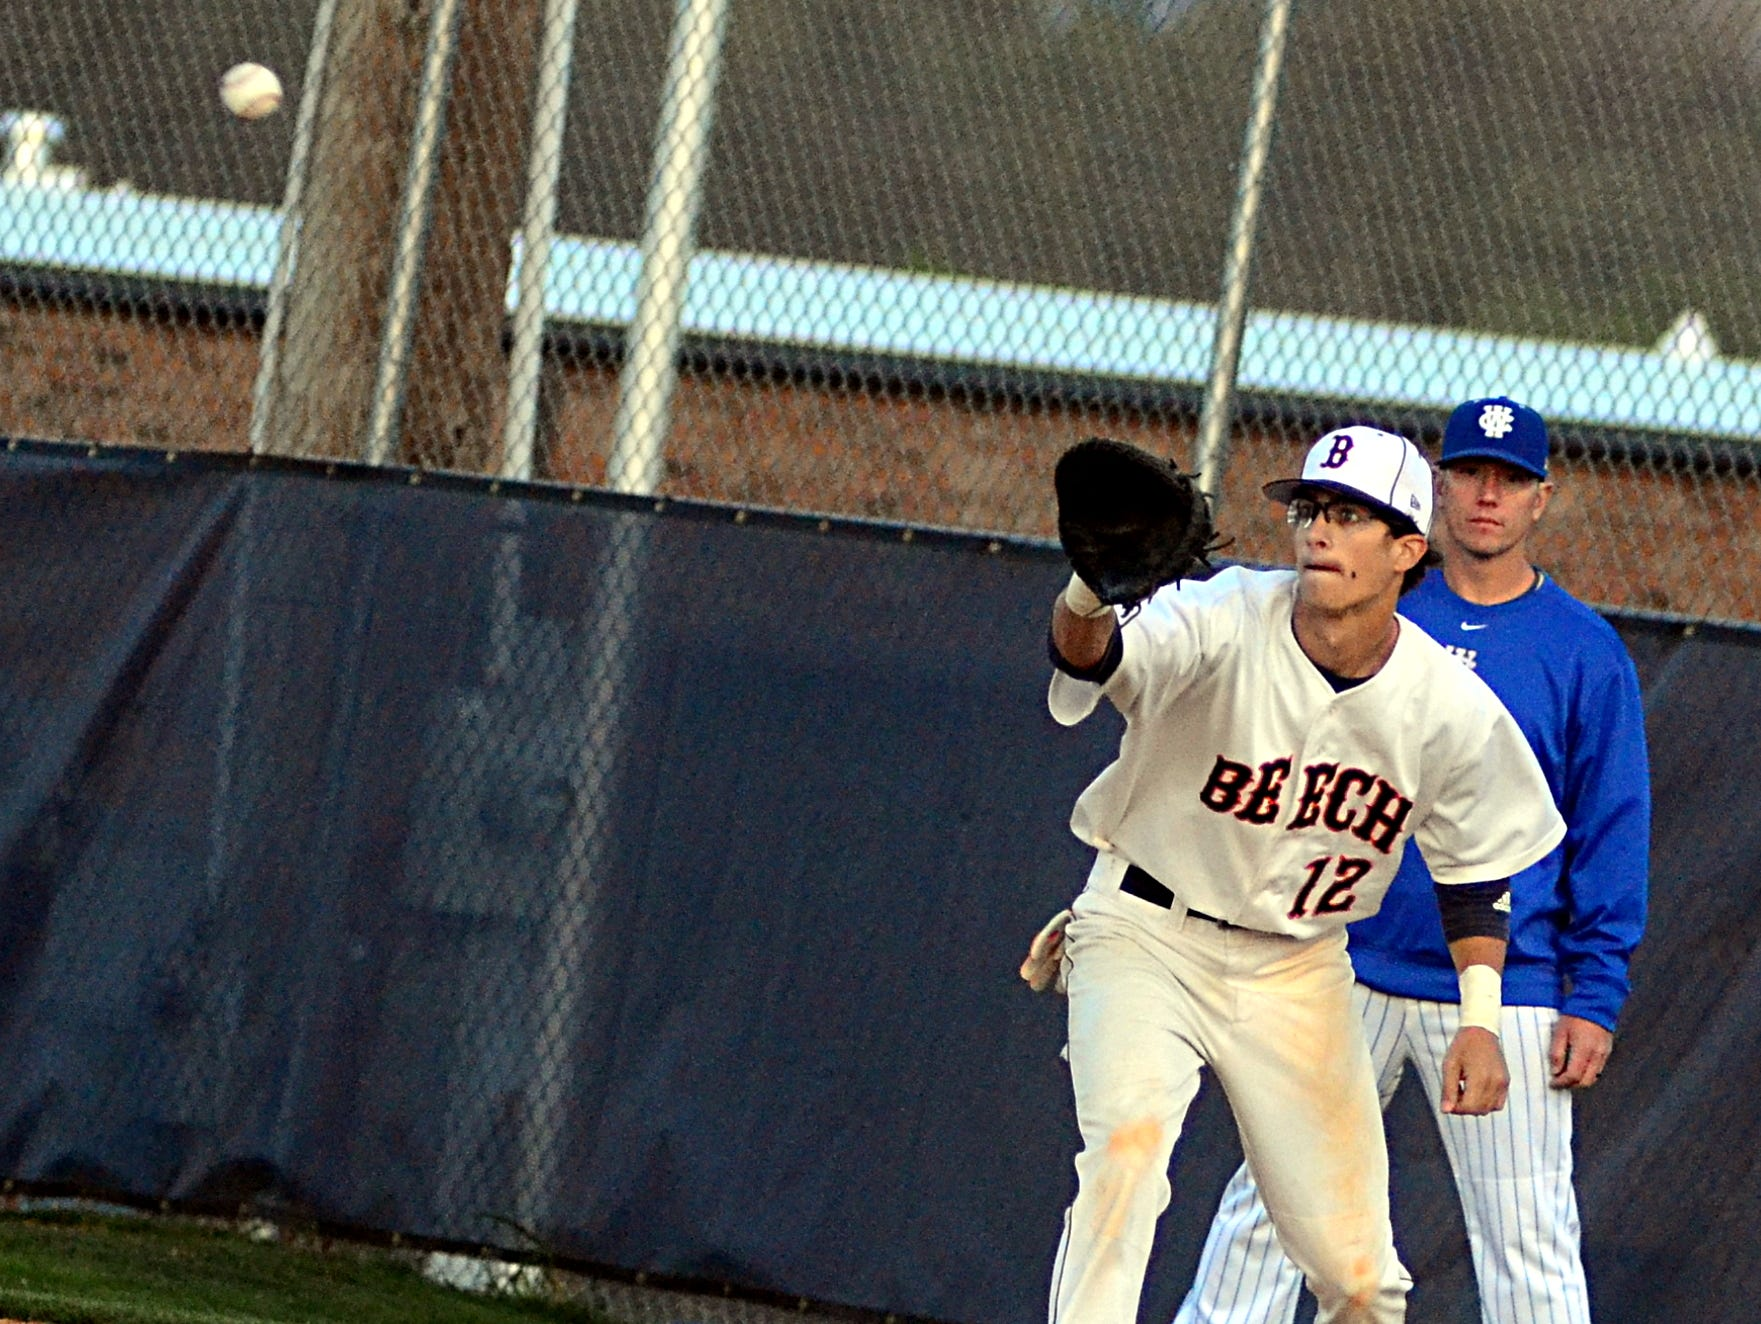 Beech High senior first baseman Jacob Jenkins receives a throw during first-inning action. Jenkins scored a run and had a stolen base in the Buccaneers' 4-2 loss.